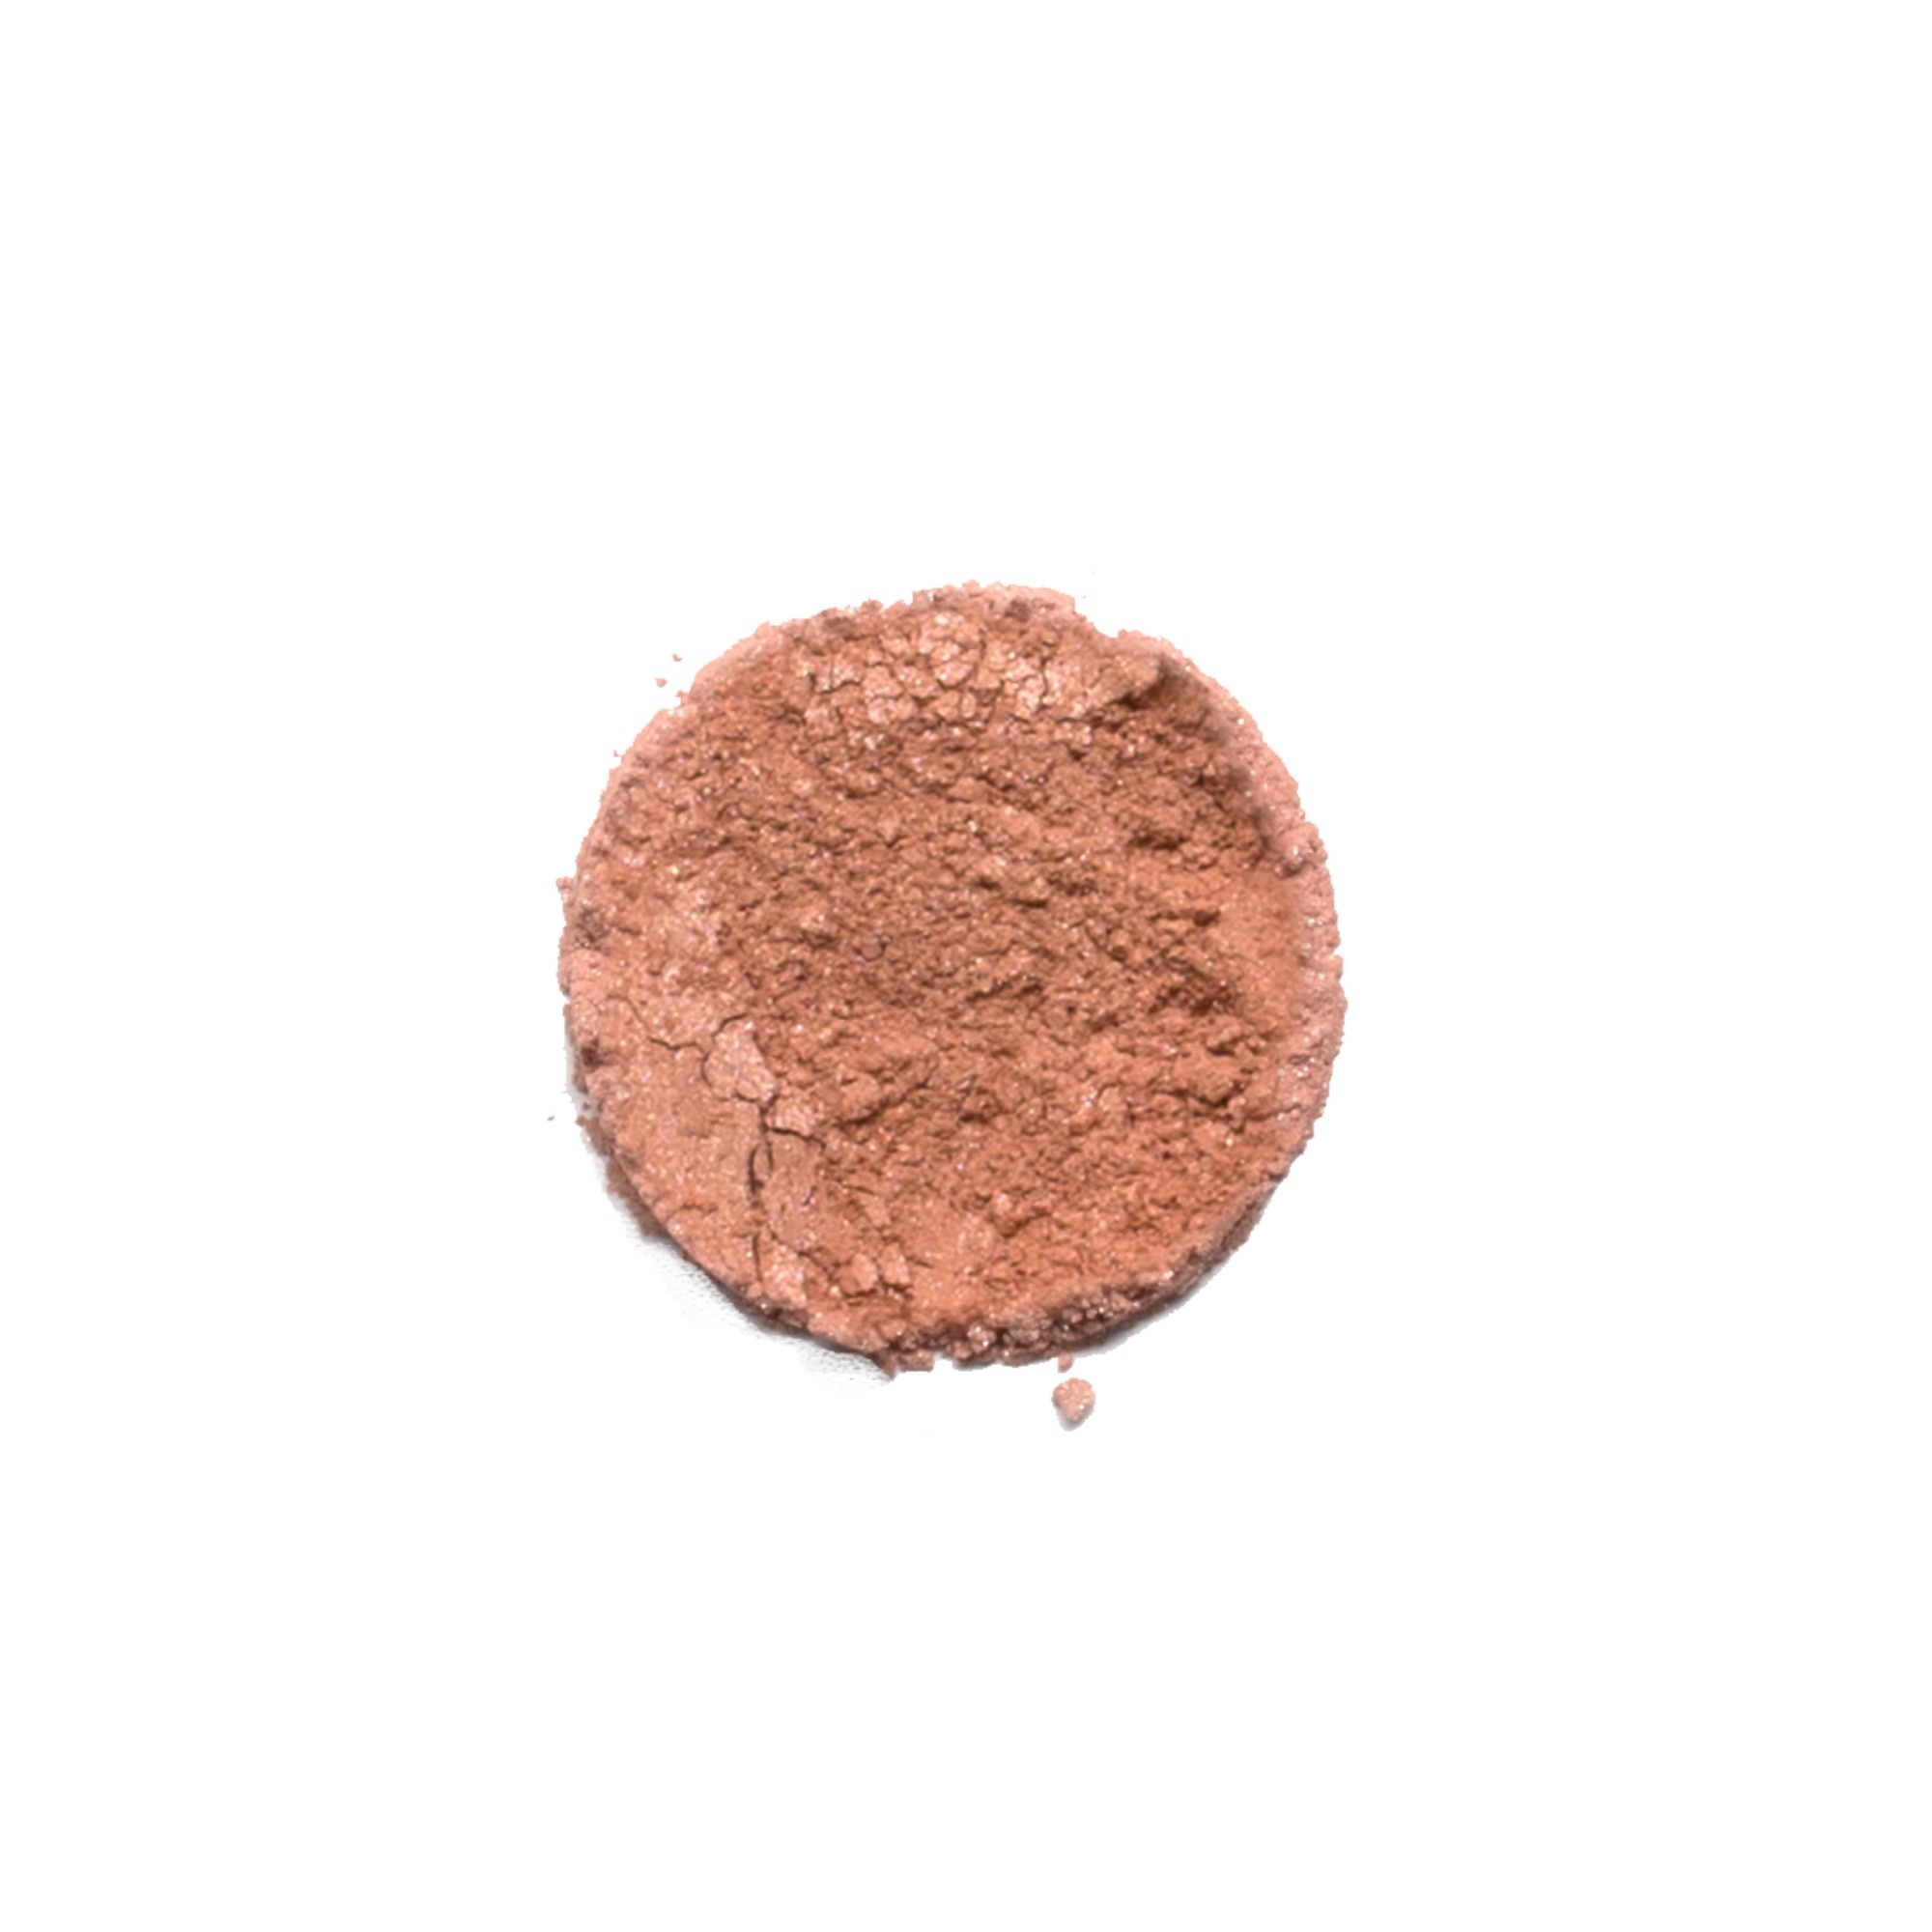 CRUSHIN' EYESHADOW    This shade is a shimmery nude peach color. Savvy Minerals eyeshadows are made with a finely ground mineral base, so they have a smooth, luxurious application and high-quality ingredients. They're formulated without fillers, synthetic fragrances, or parabens. Plus, its long-lasting formula leaves you with a gorgeous look you can wear all day.   Click here   to learn more about this product.